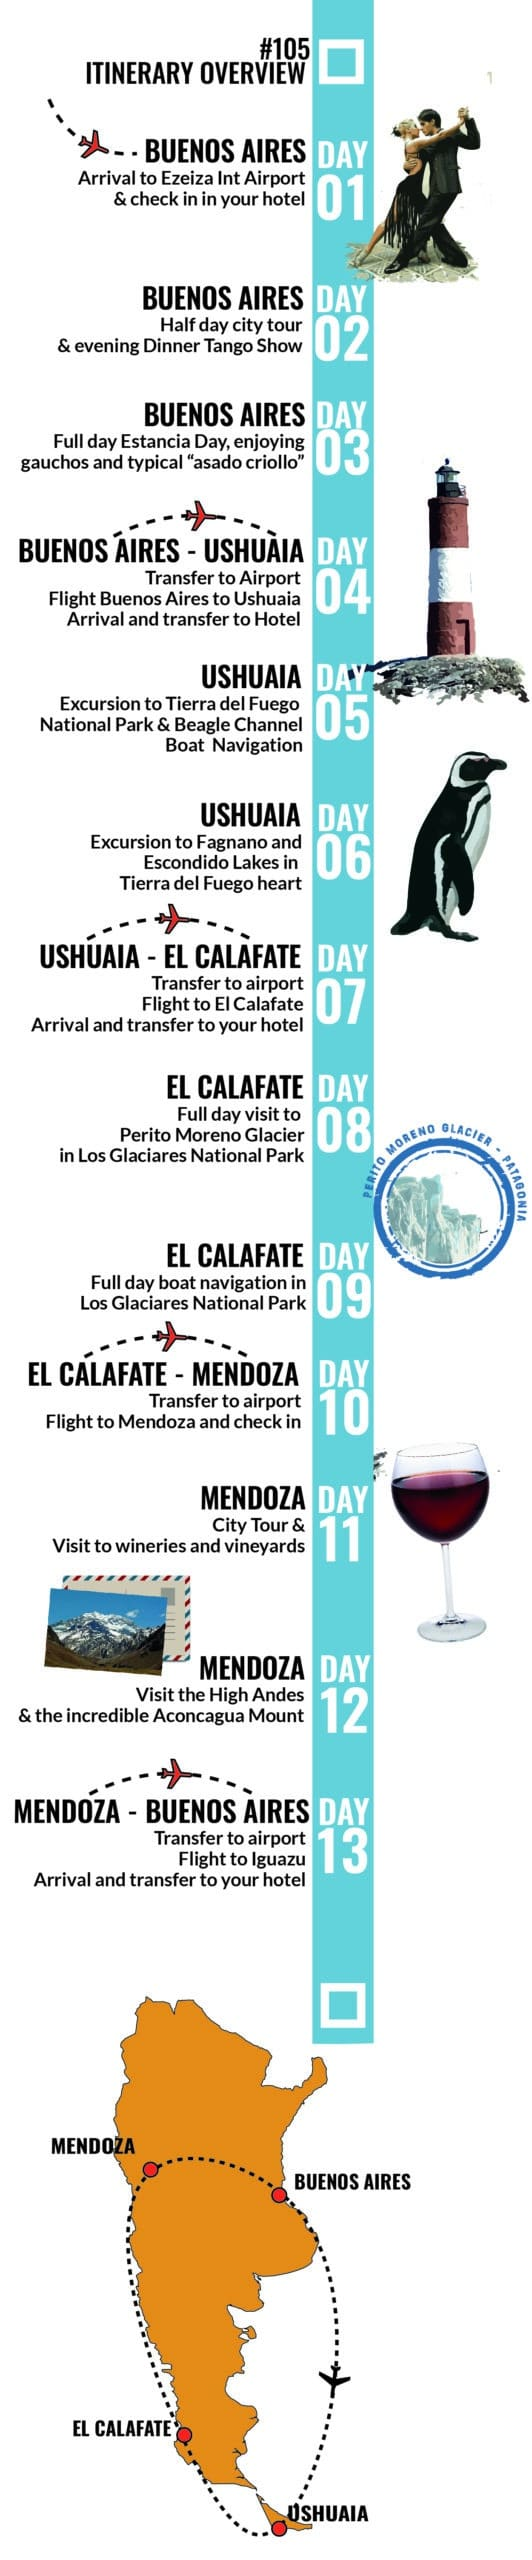 Buenos Aires, Mendoza, Ushuaia and El Calafate Tour, by RipioTurismo Incoming tour Operator Argentina and South America